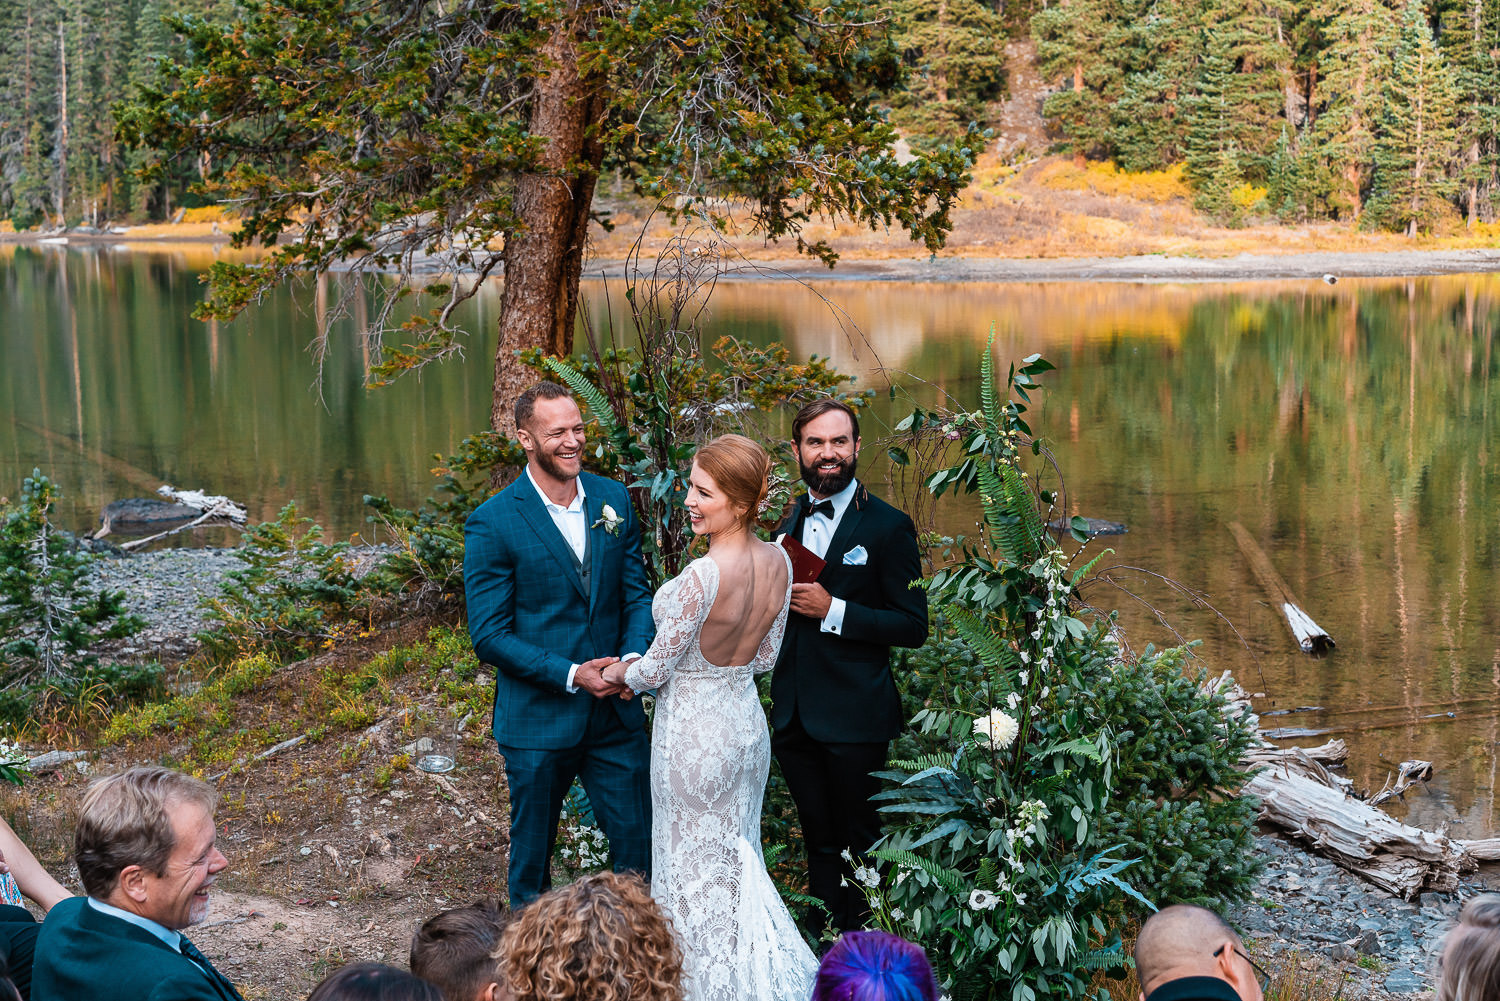 How to Write an Elopement Ceremony